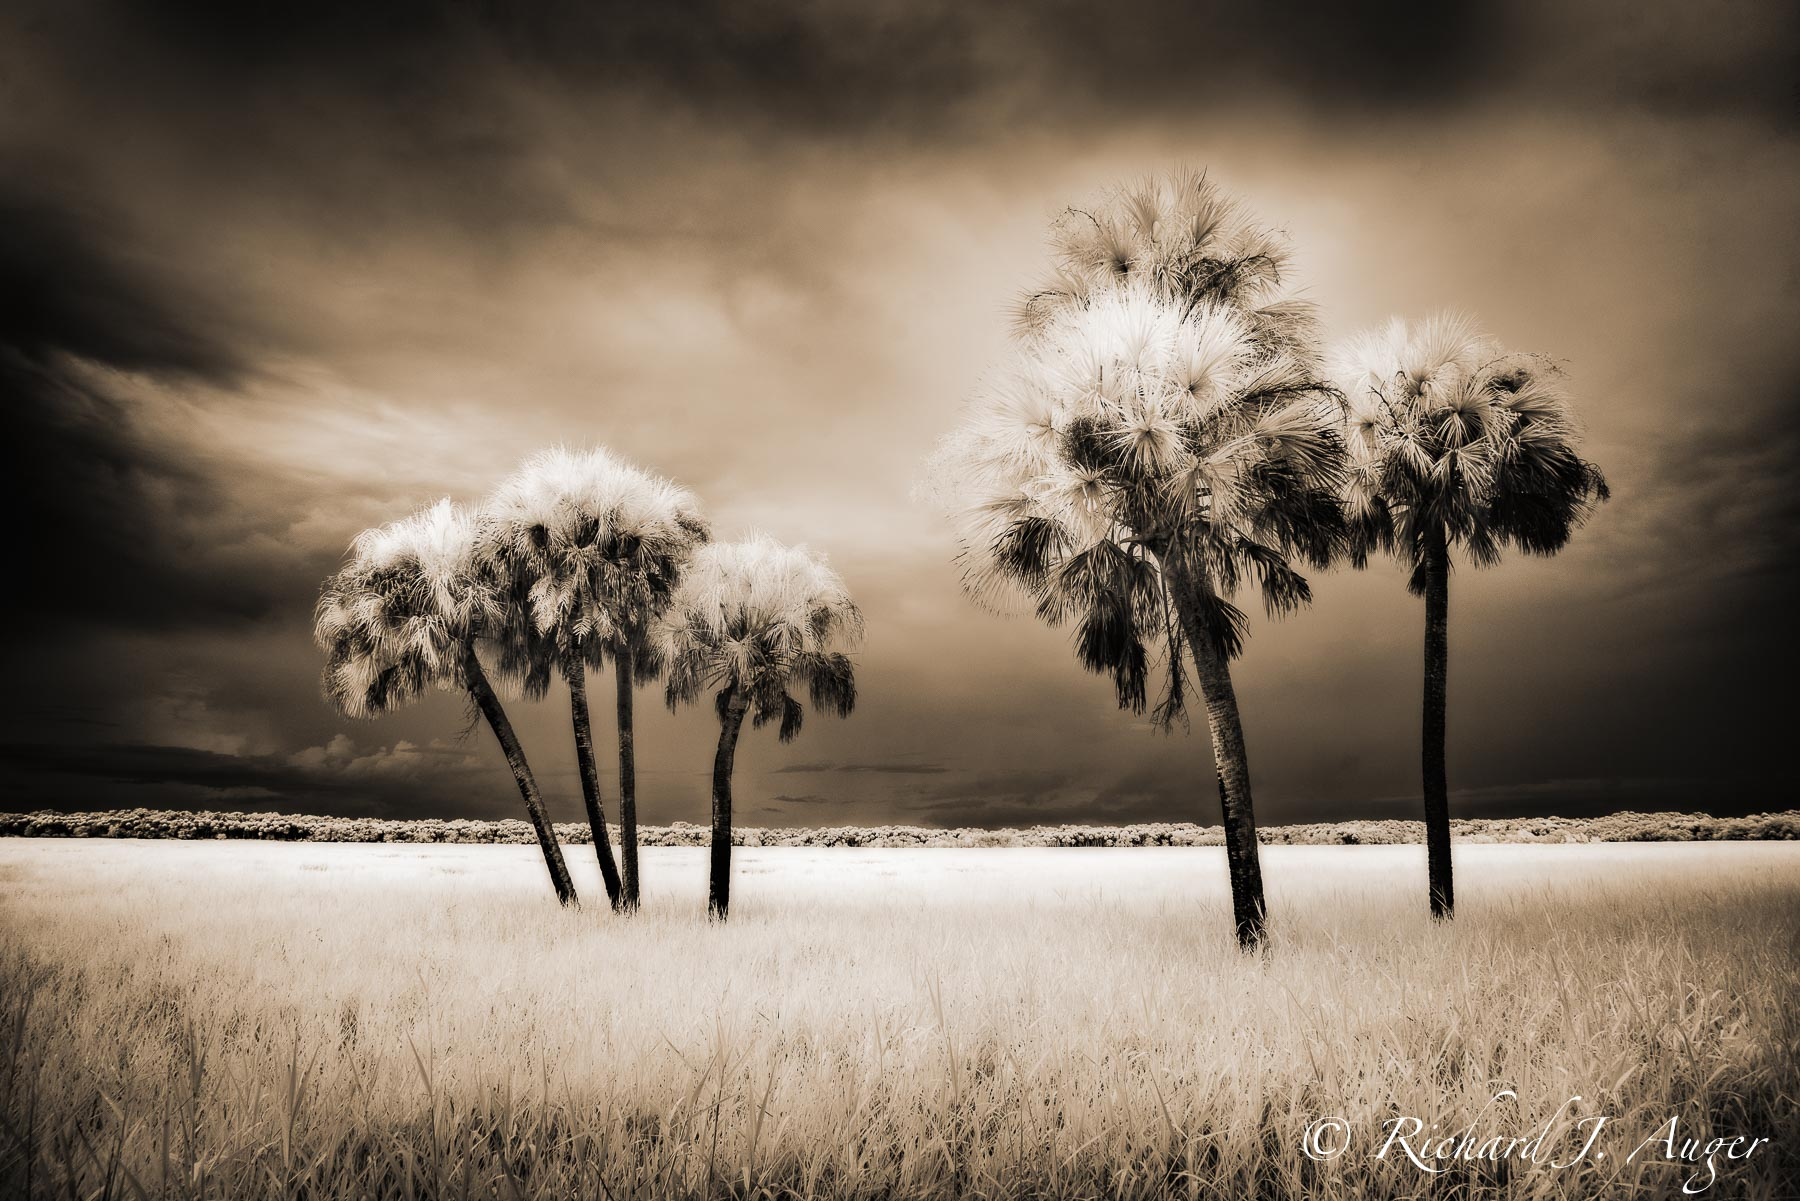 Myakka River State Park, Florida, Palm Trees, Infrared, Moody, Storm, Monochrome, Sepia, Photograph, Photographer, Landscape, Art